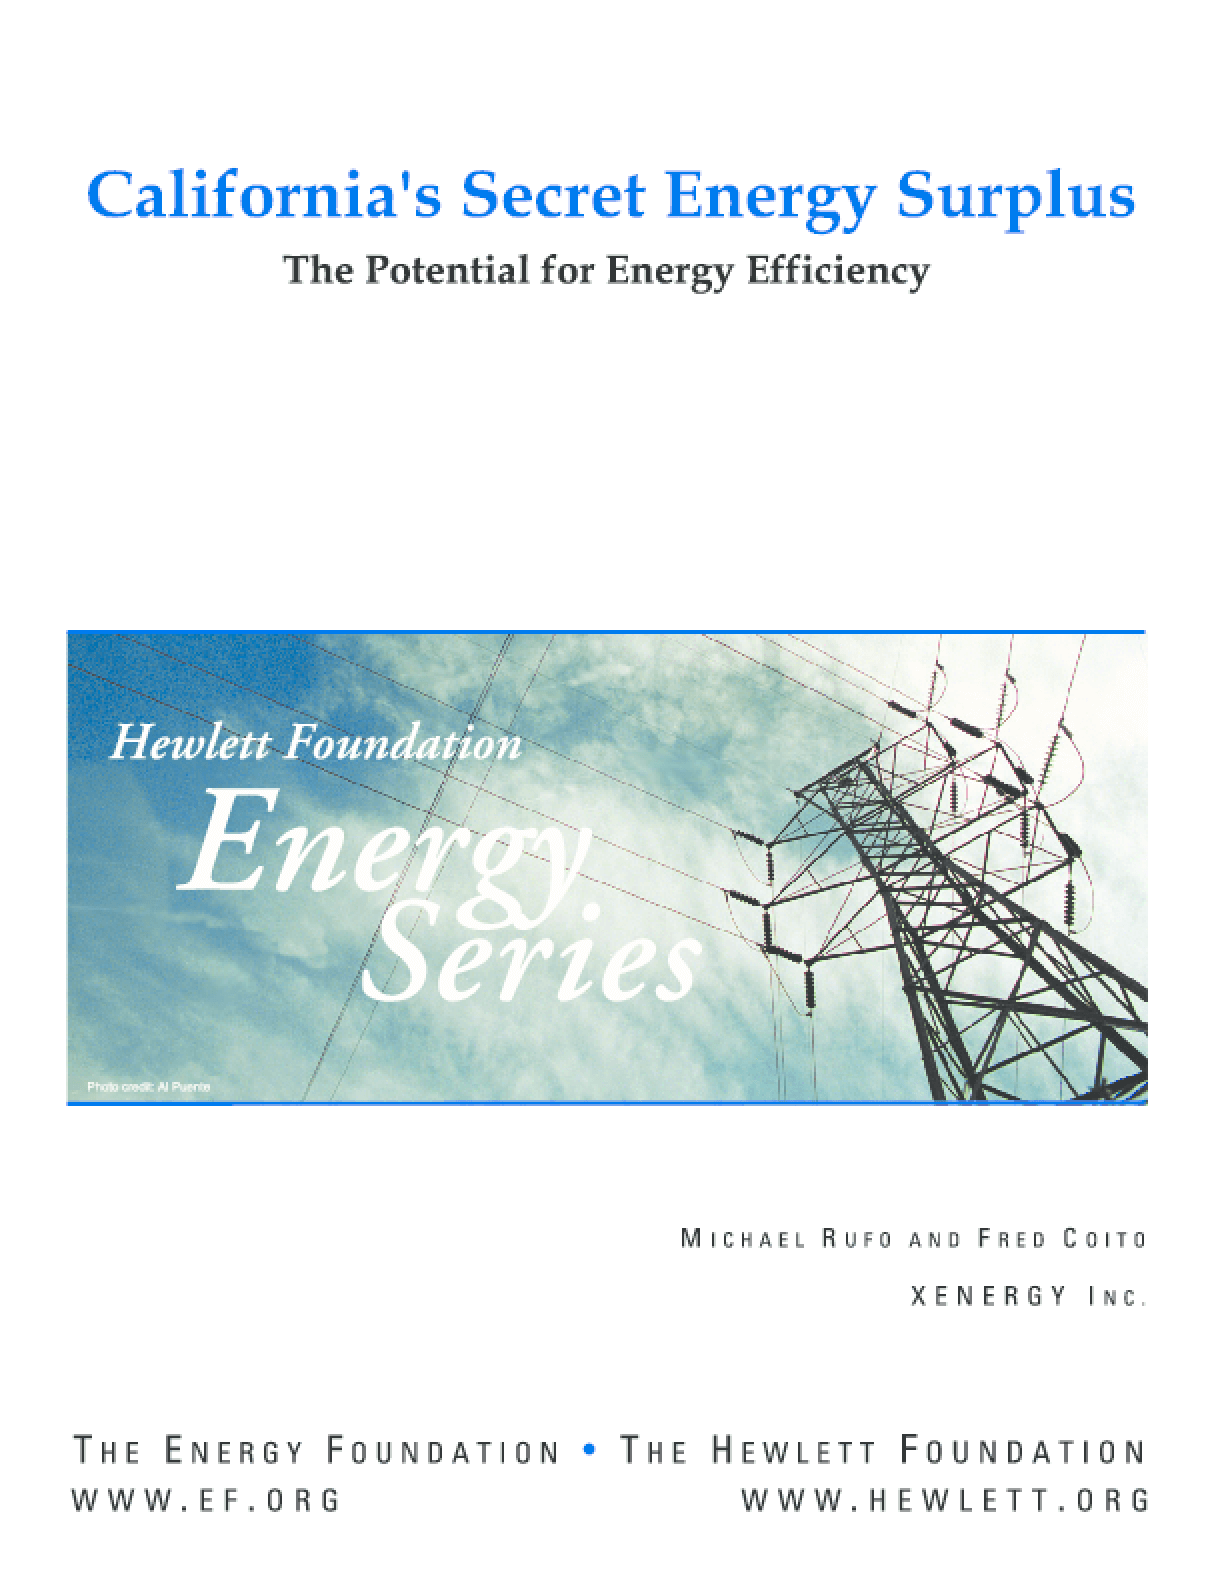 California's Secret Energy Surplus: The Potential for Energy Efficiency